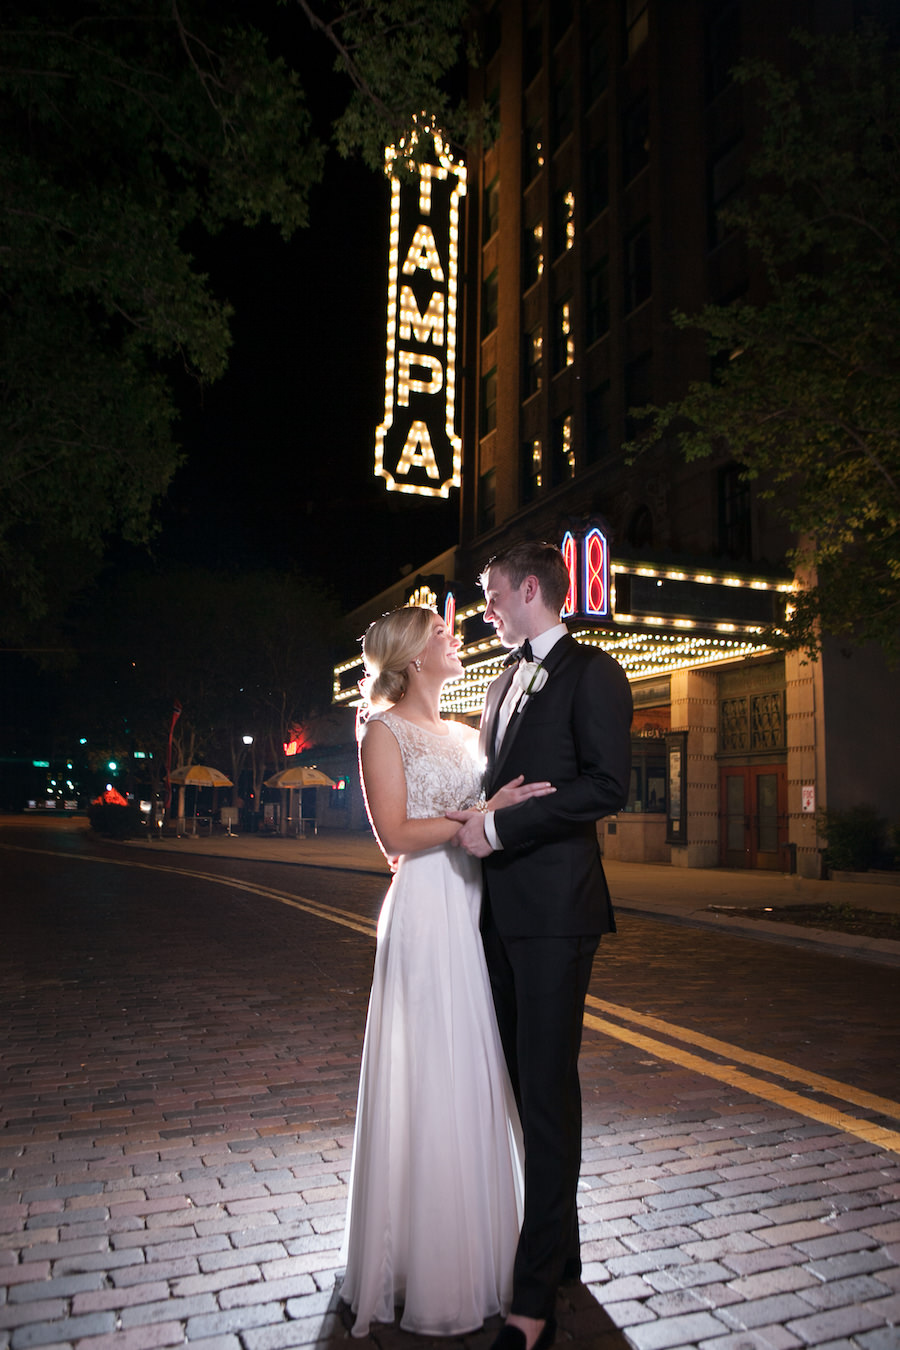 Downtown Tampa Bride and Groom Wedding Portrait In Front of The Tampa Theatre Lighted Sign | Tampa Wedding Photographer Carrie Wildes Photography